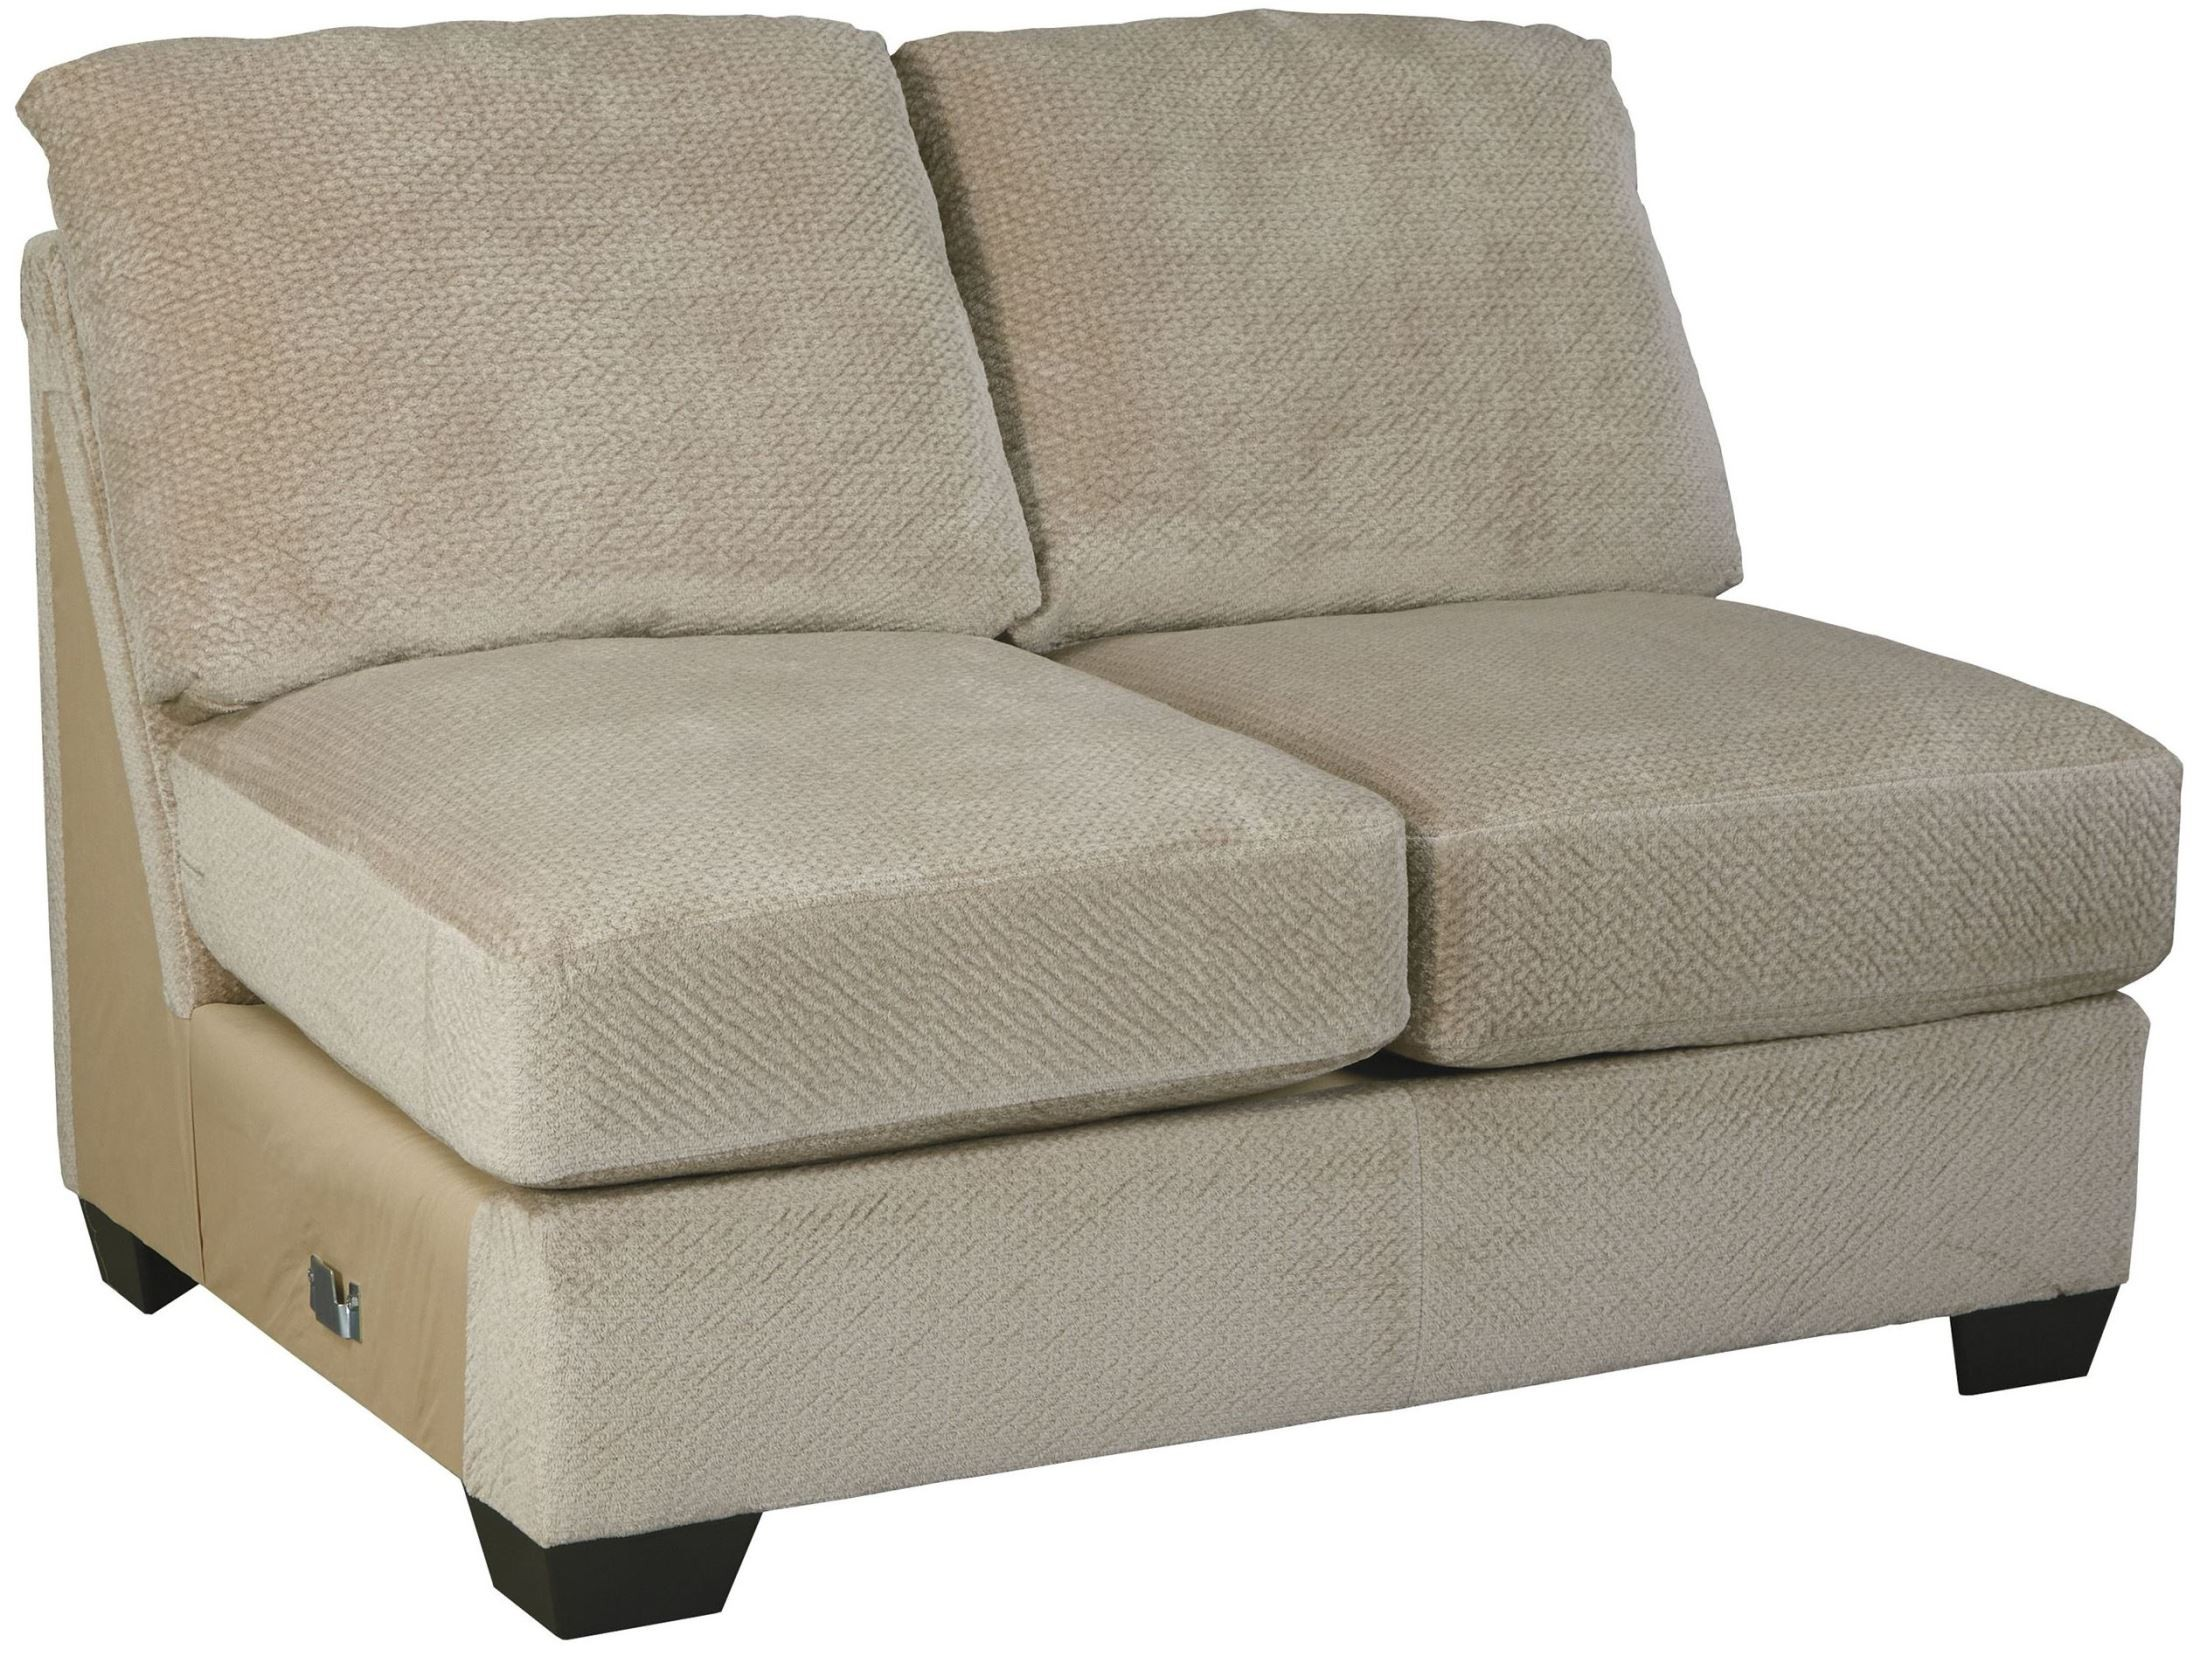 Hazes Fleece LAF Sofa Sectional from Ashley